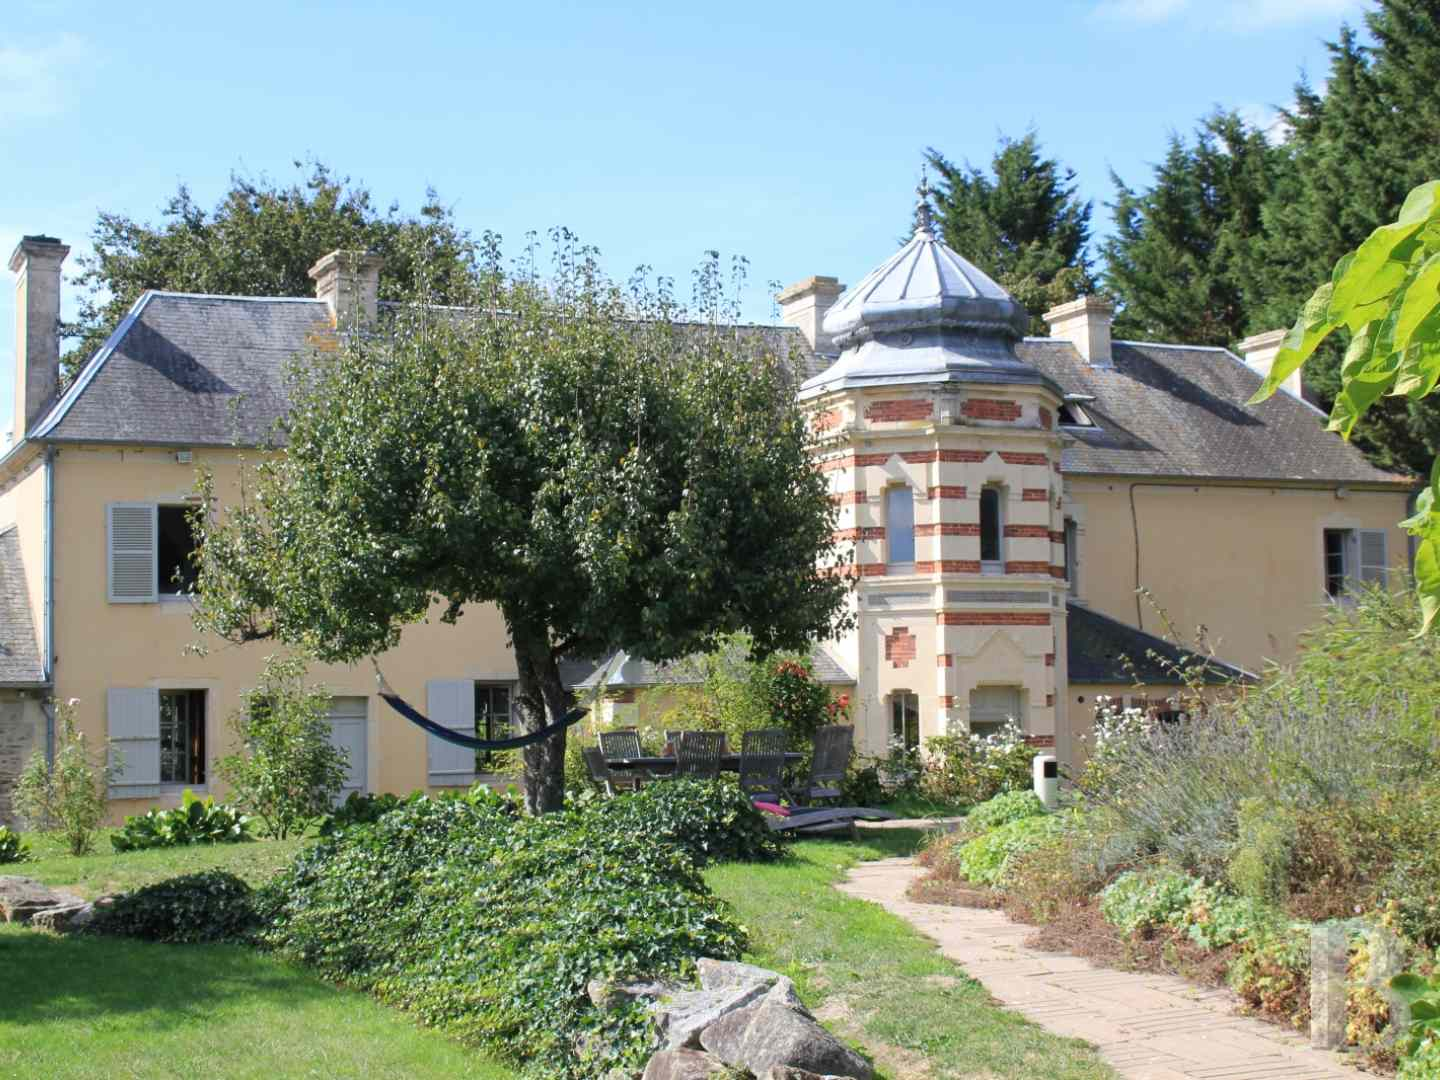 manoirs a vendre basse normandie manoir propriete - 4 zoom